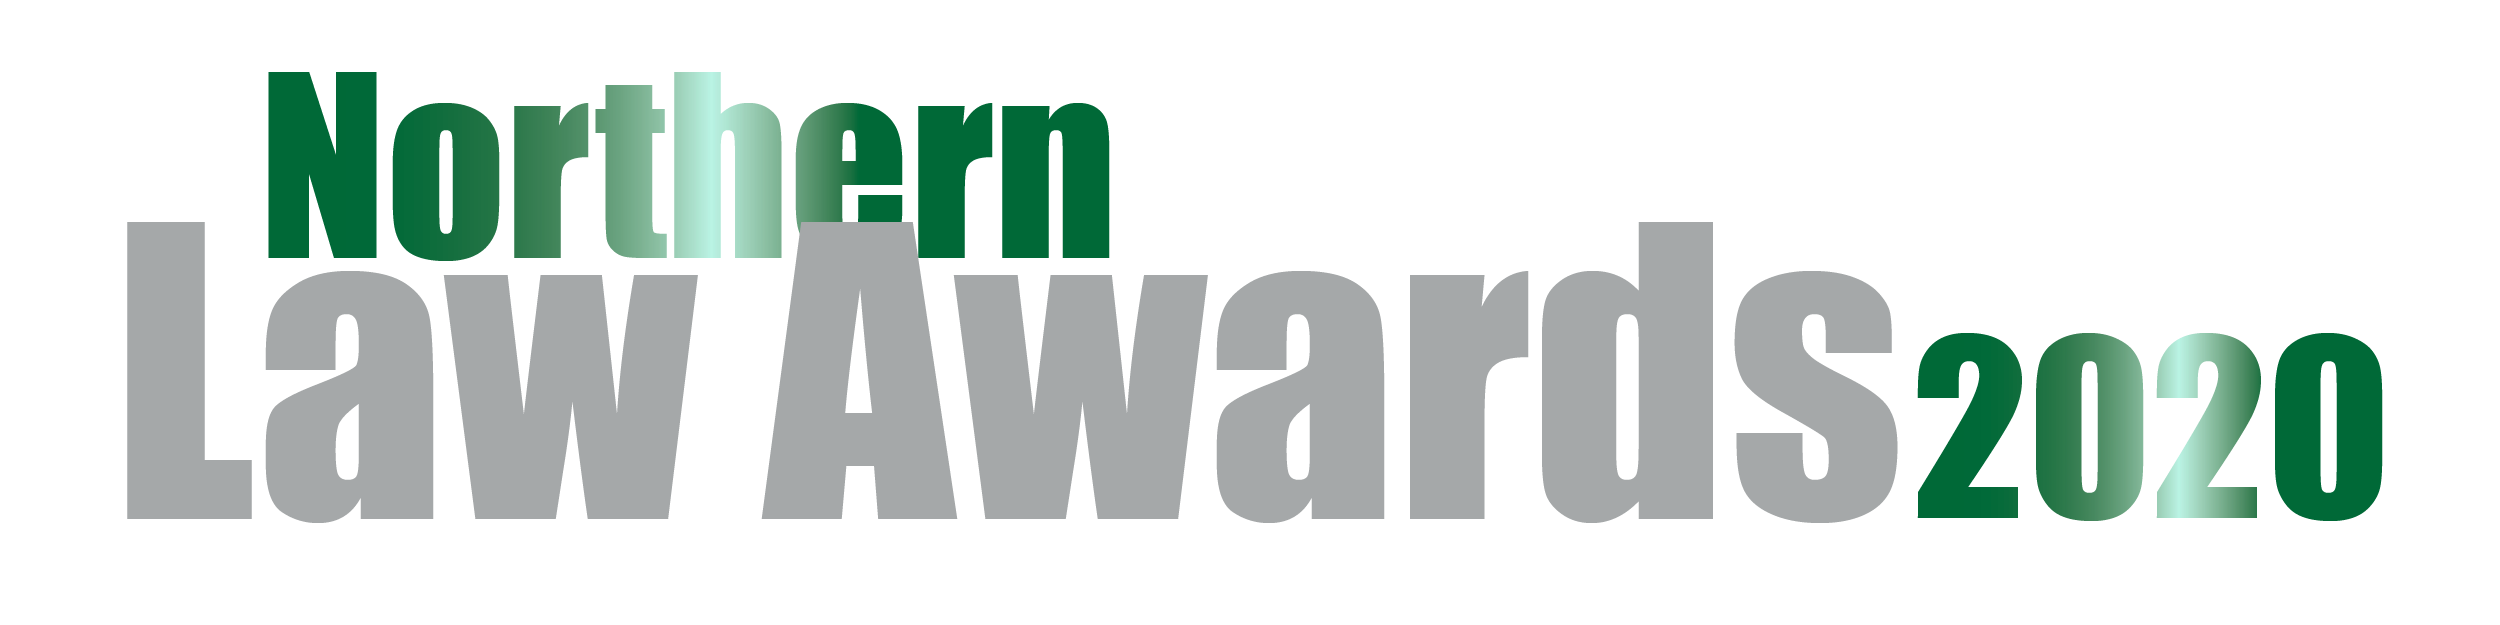 Northern Law Awards 2020